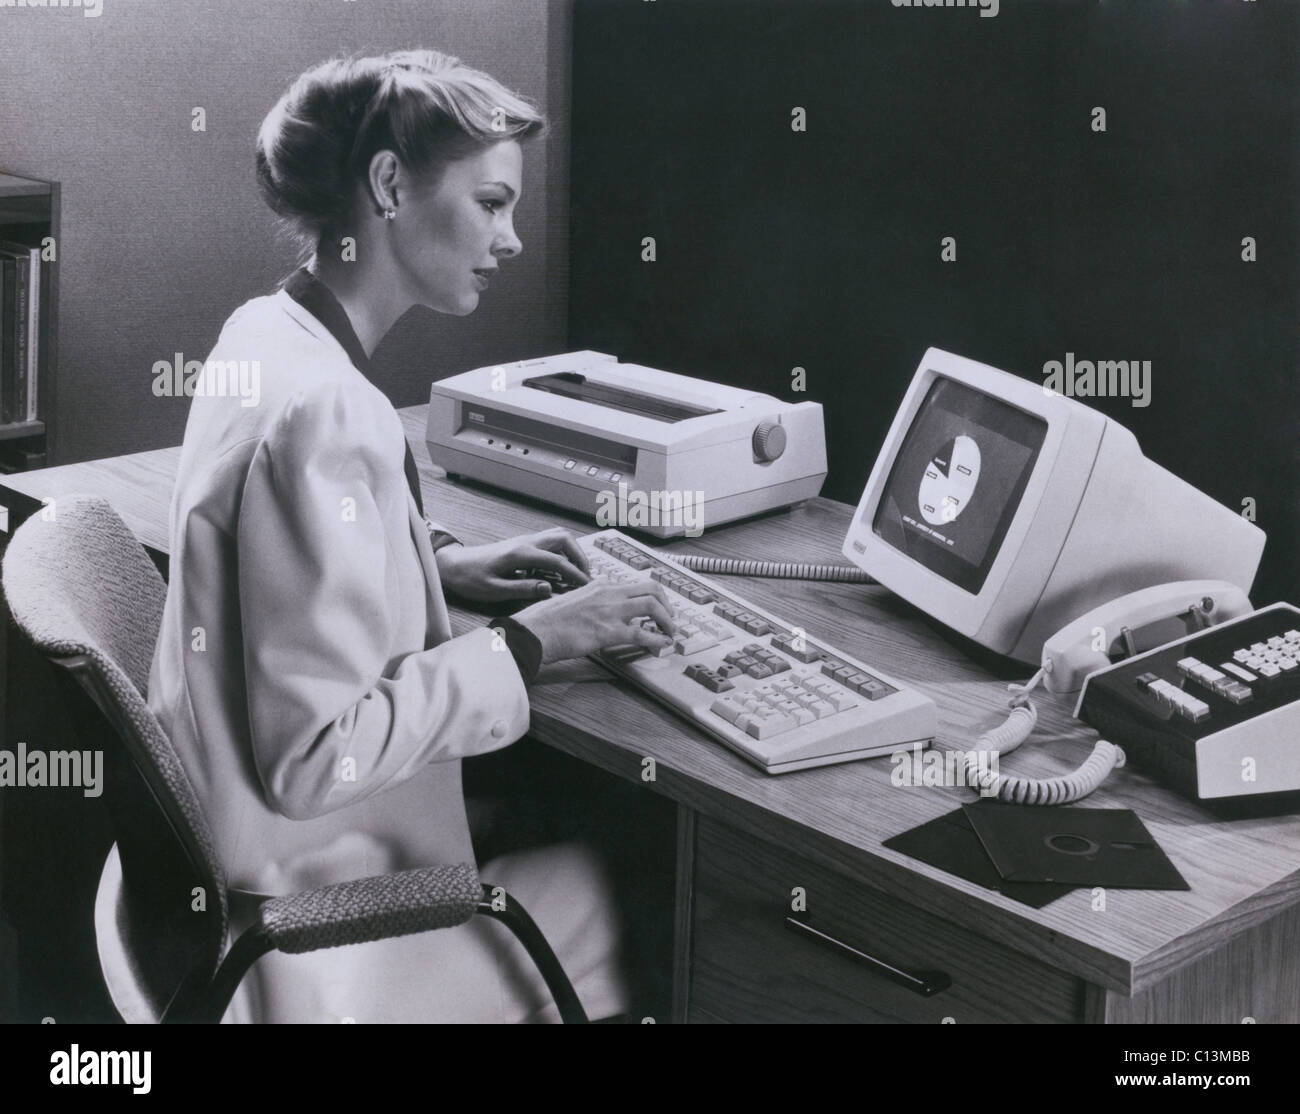 Women using and early personal computer made by the Digital